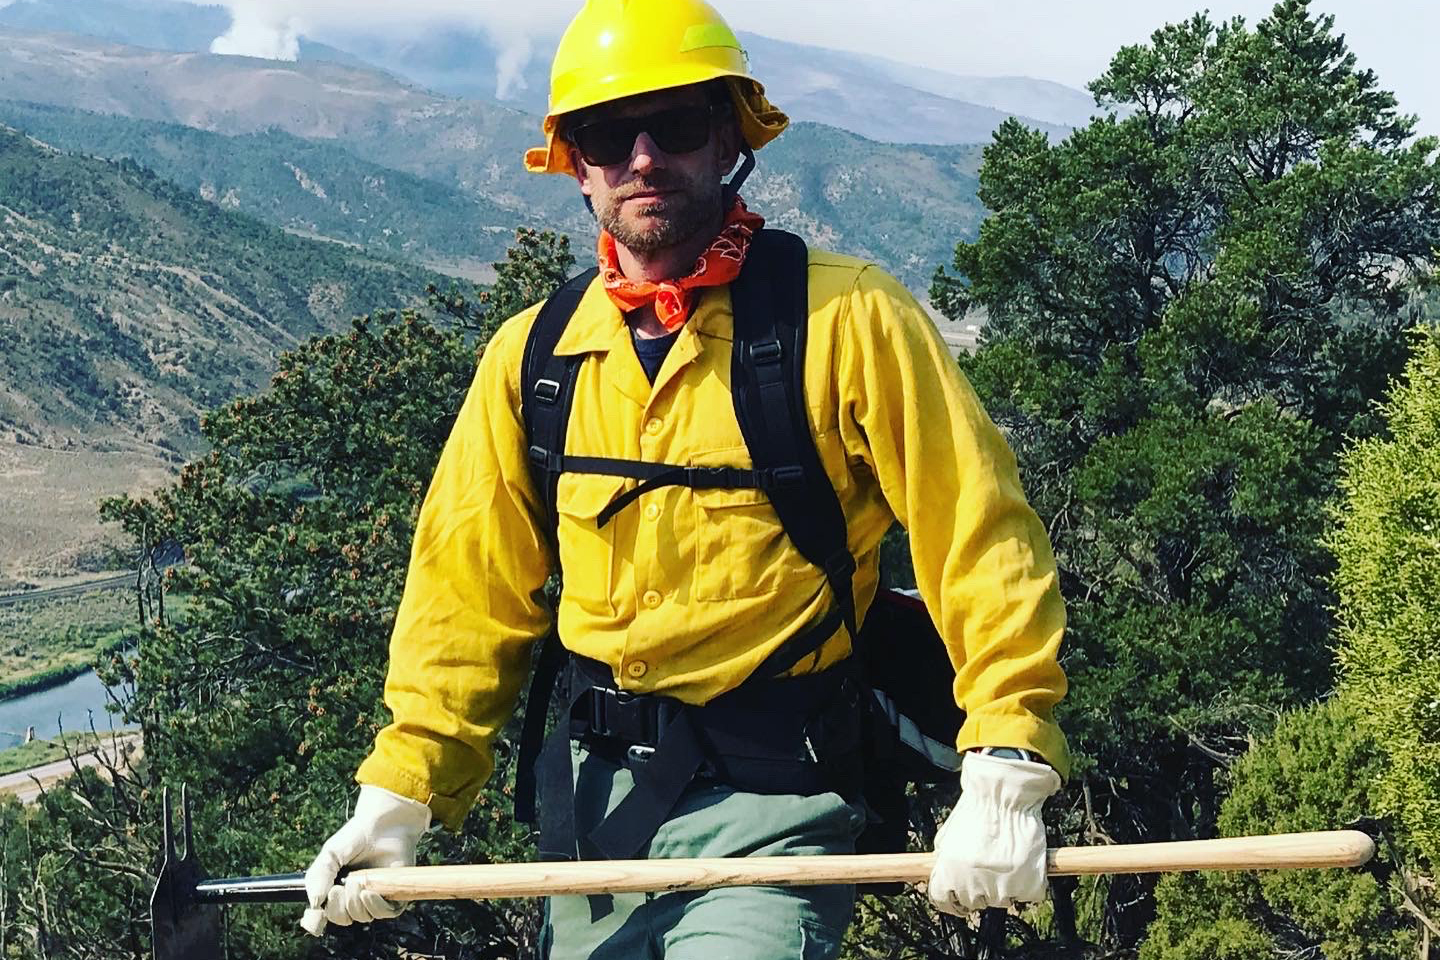 State Natural Resources Director Dan Gibbs out in the field with his Grizzly Creek fire crew.